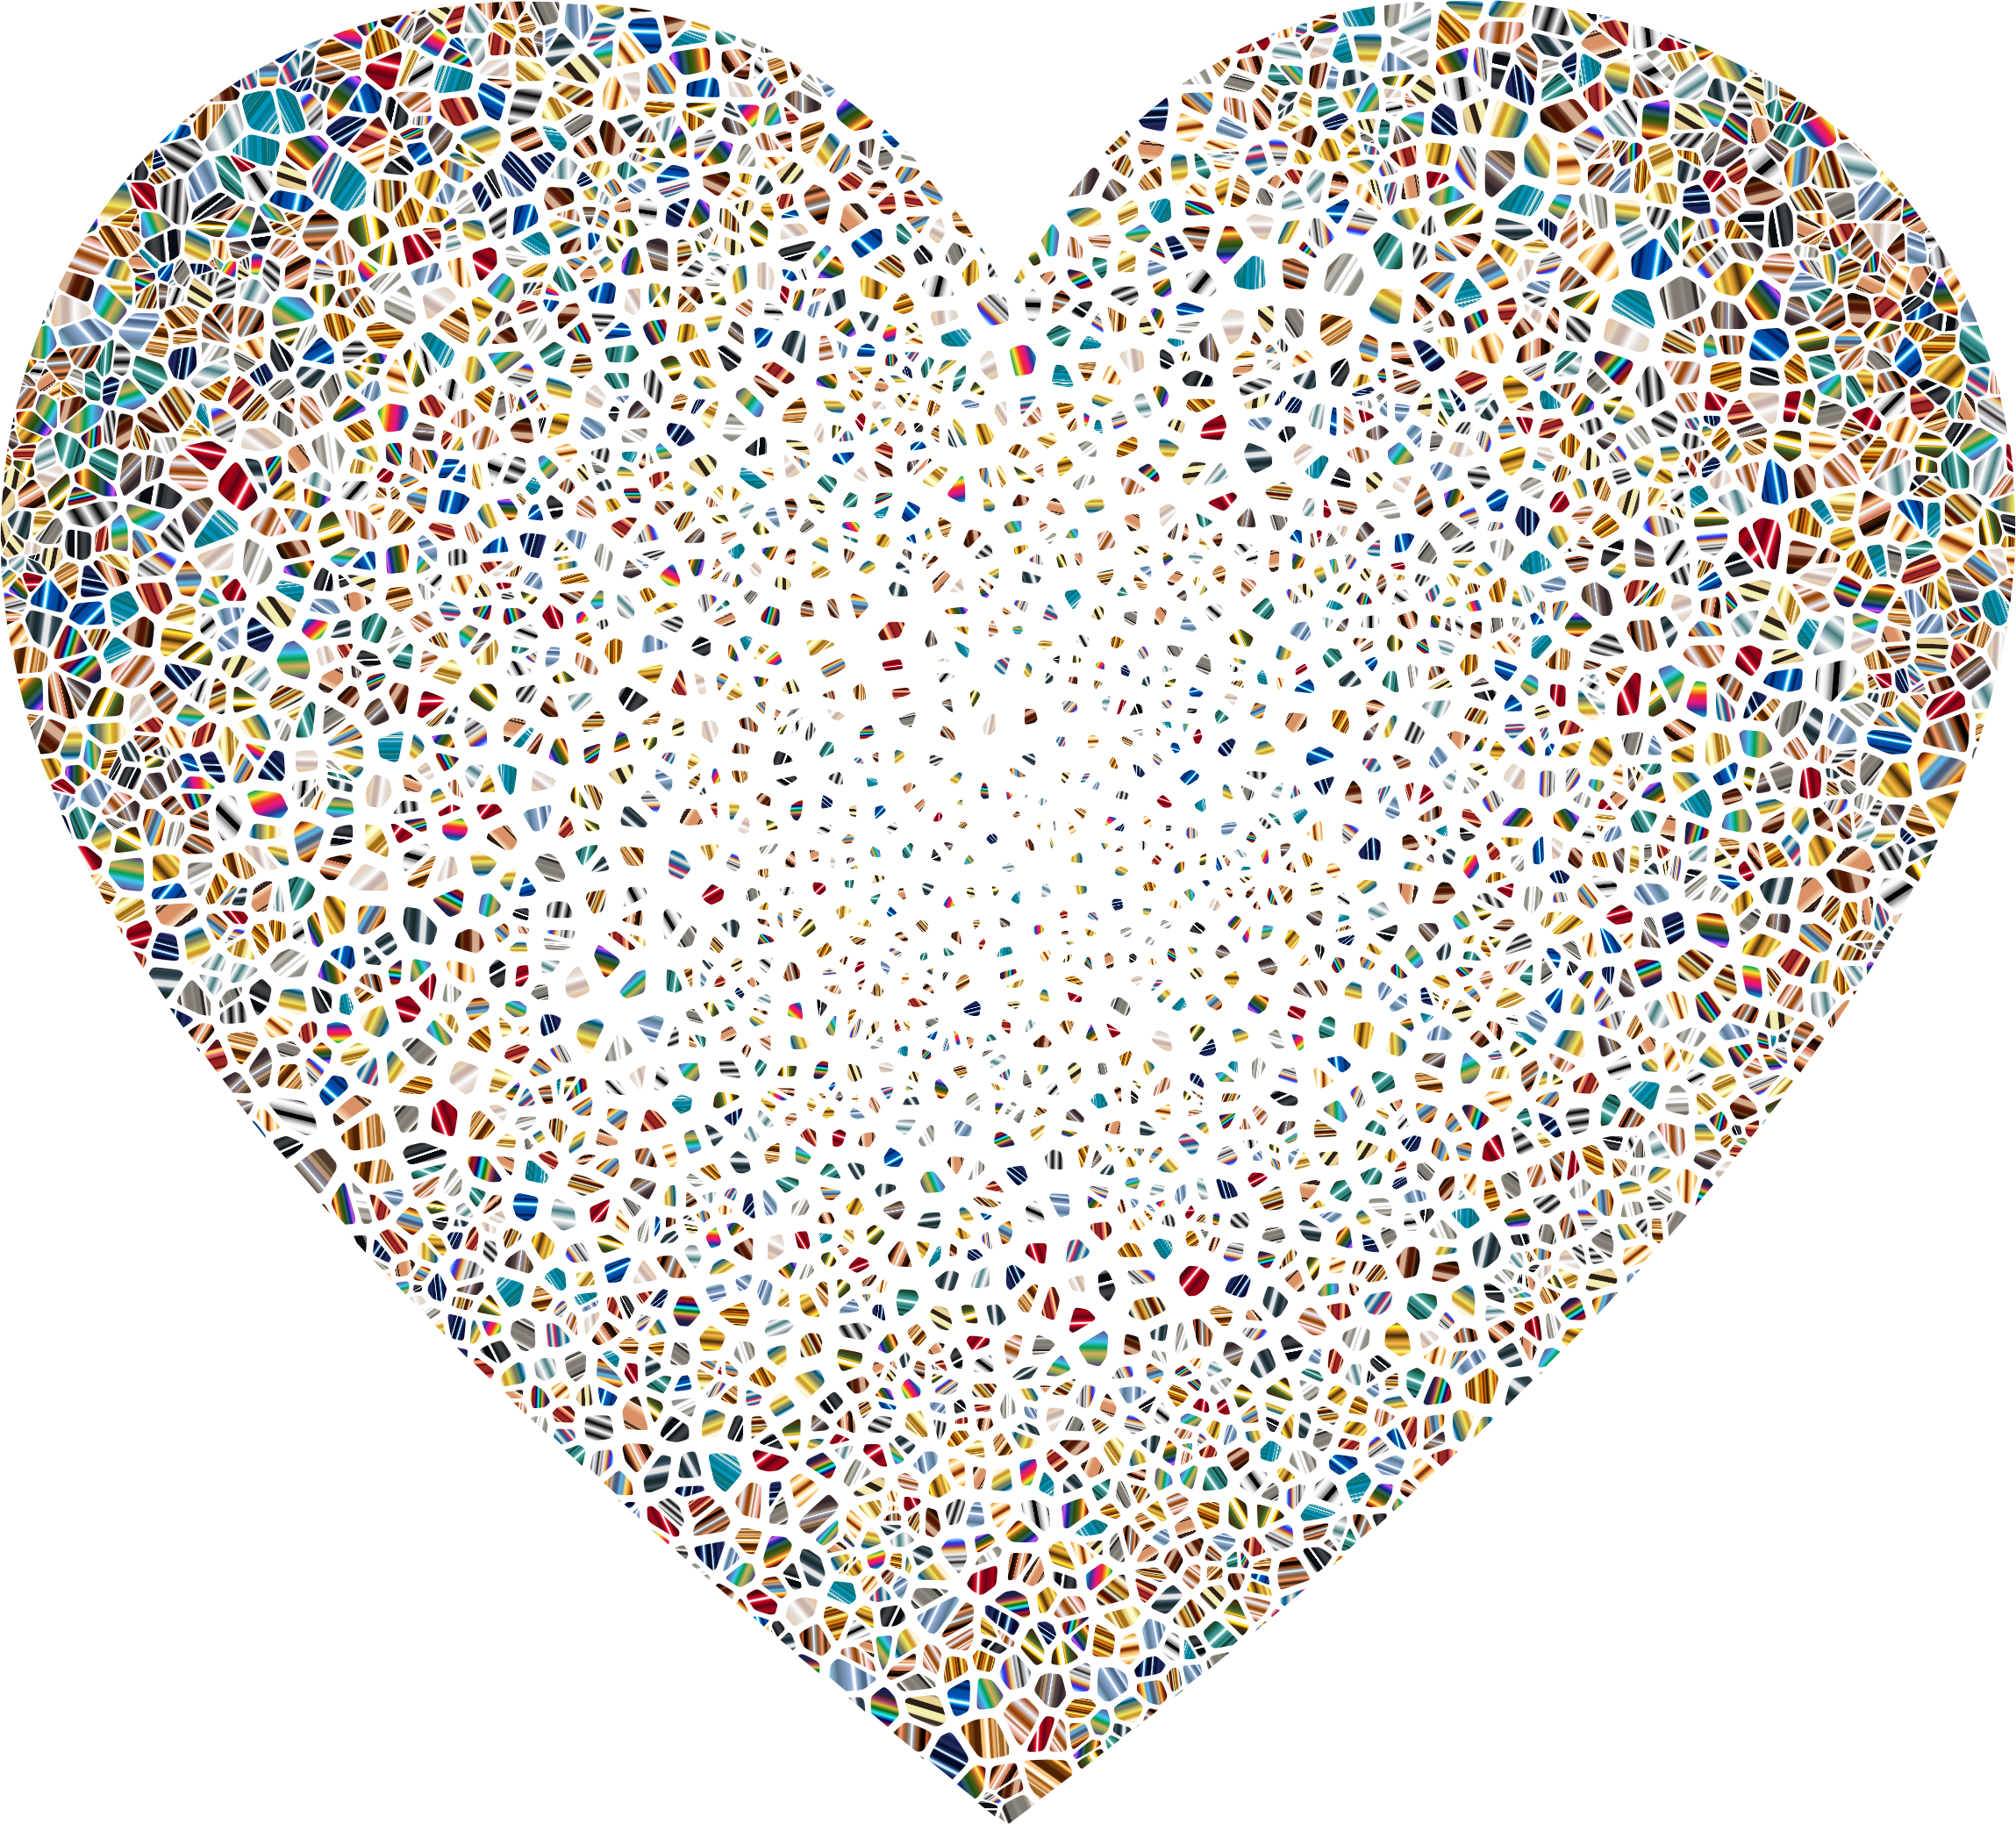 Shattered heart clipart image Clipart - Psychedelic Shattered Tiled Heart No Background image